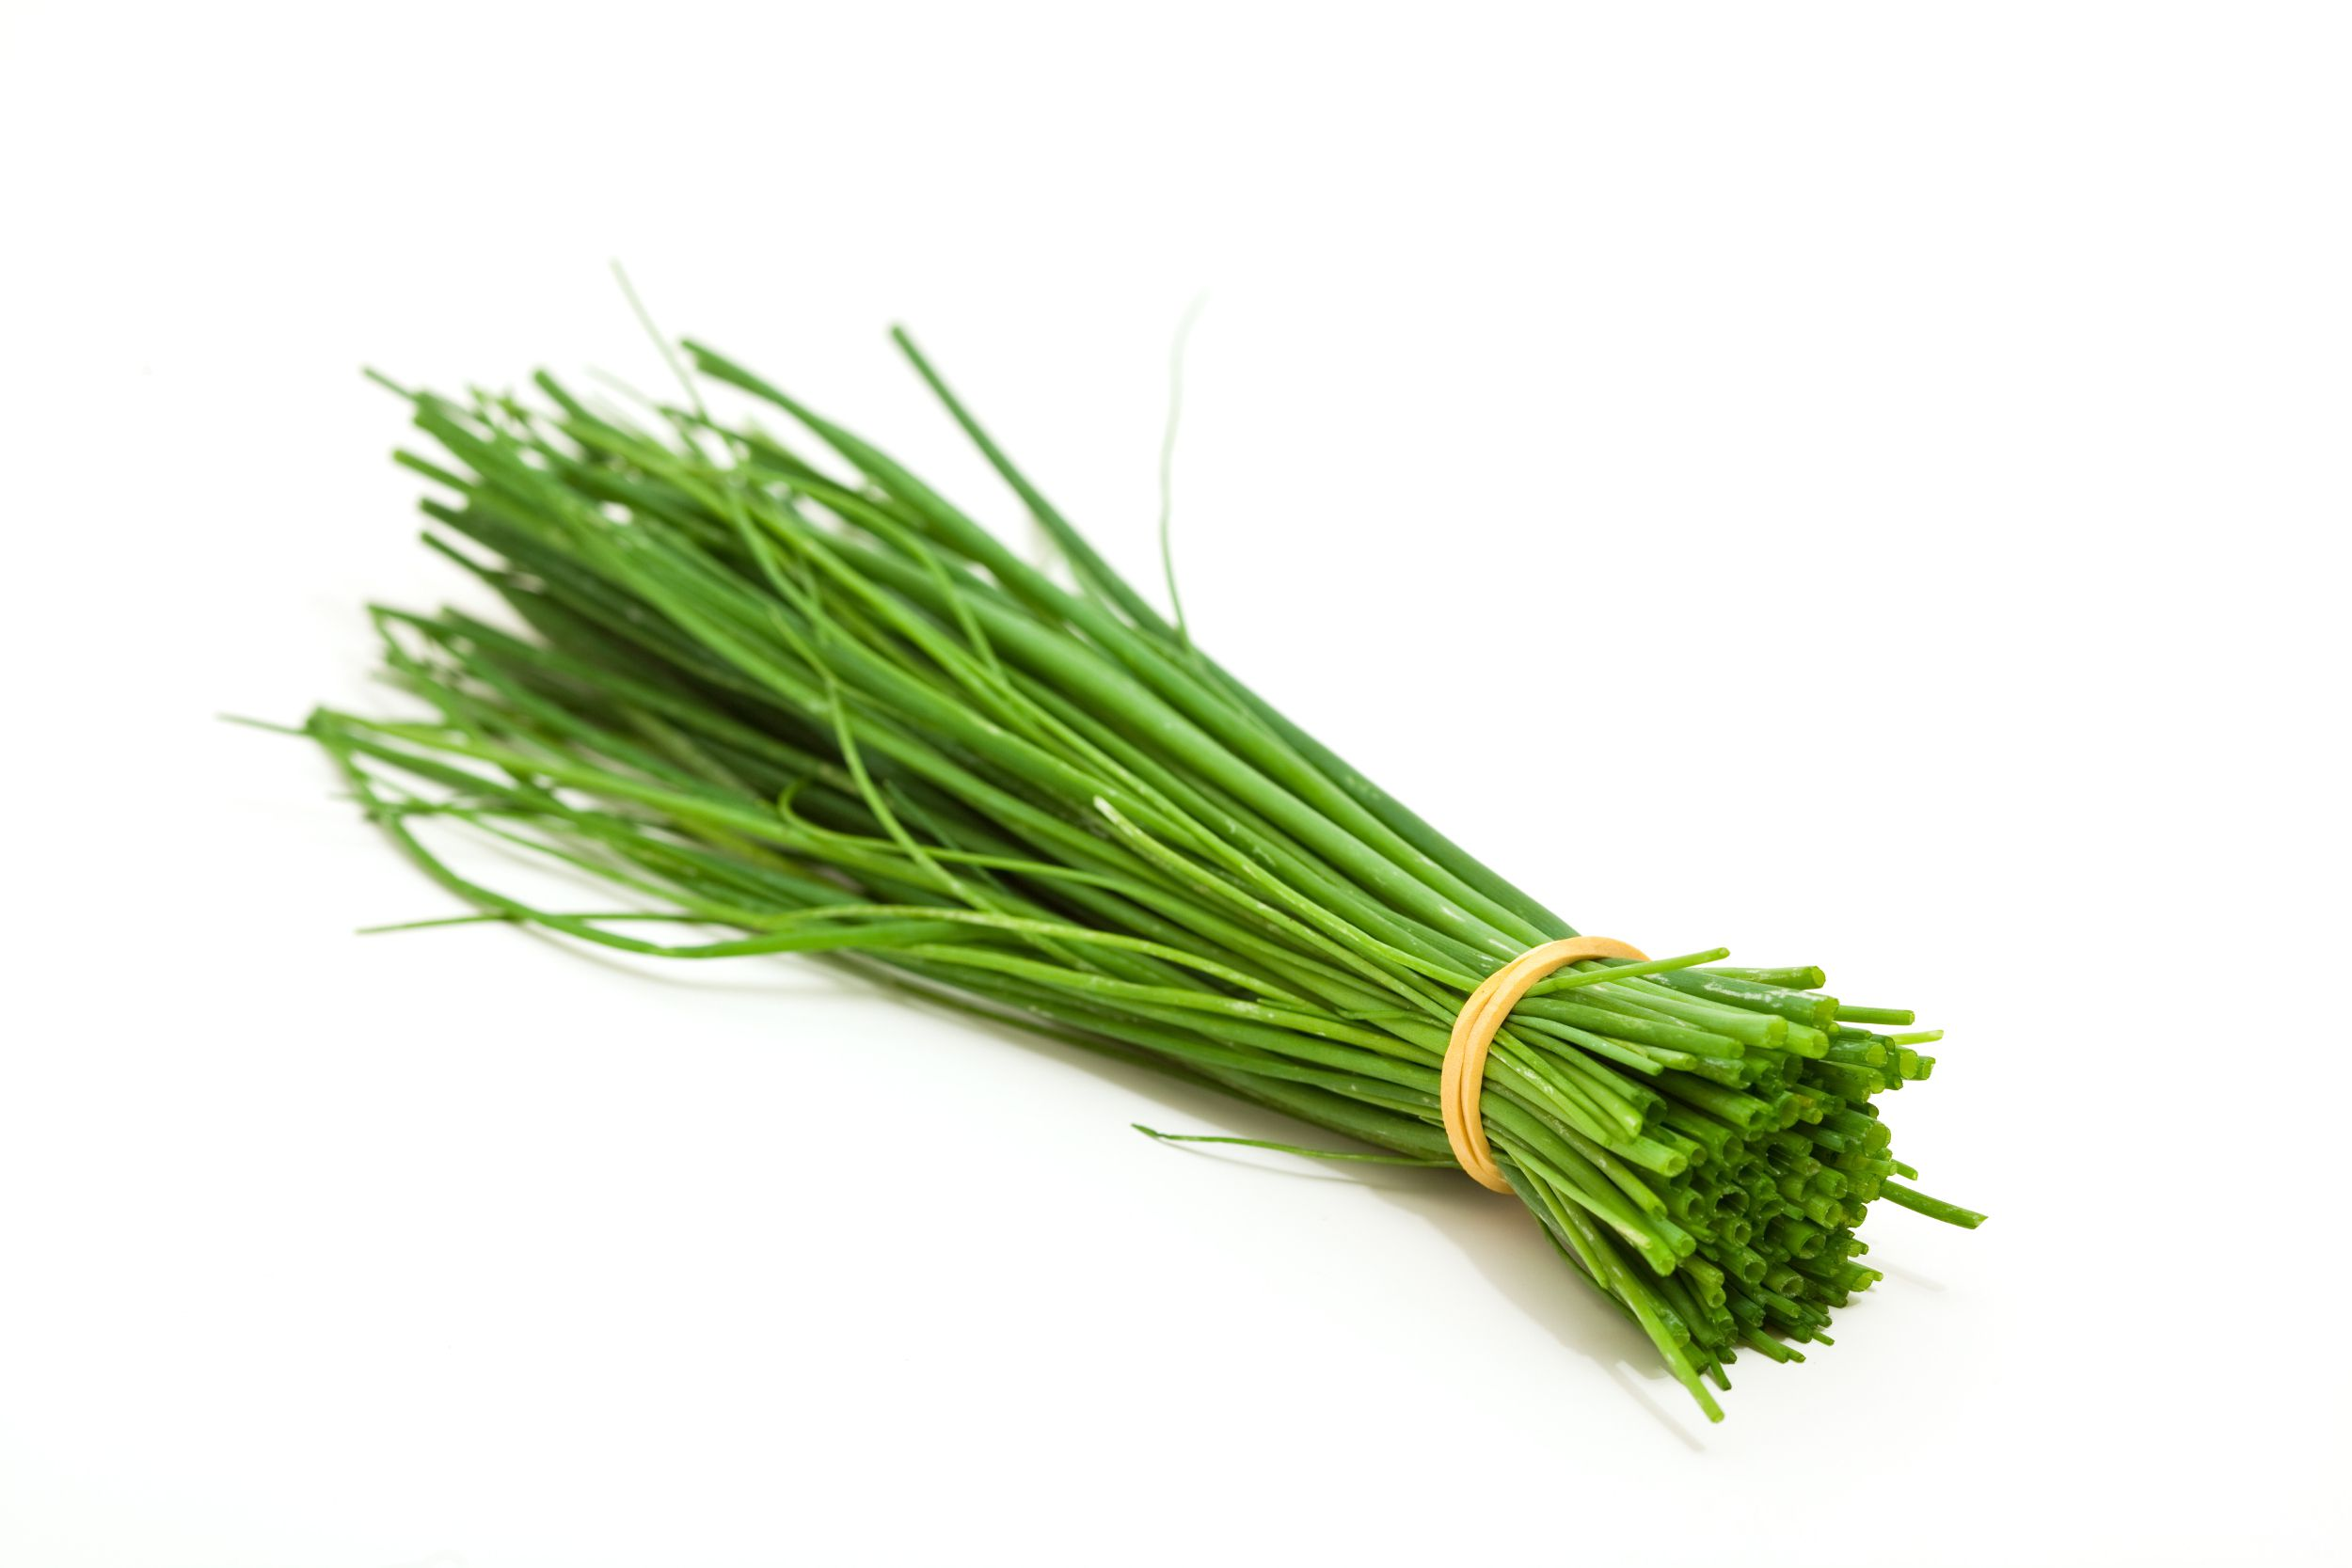 Chives: A Versatile Herb, Easy to Use and Grow Your Own